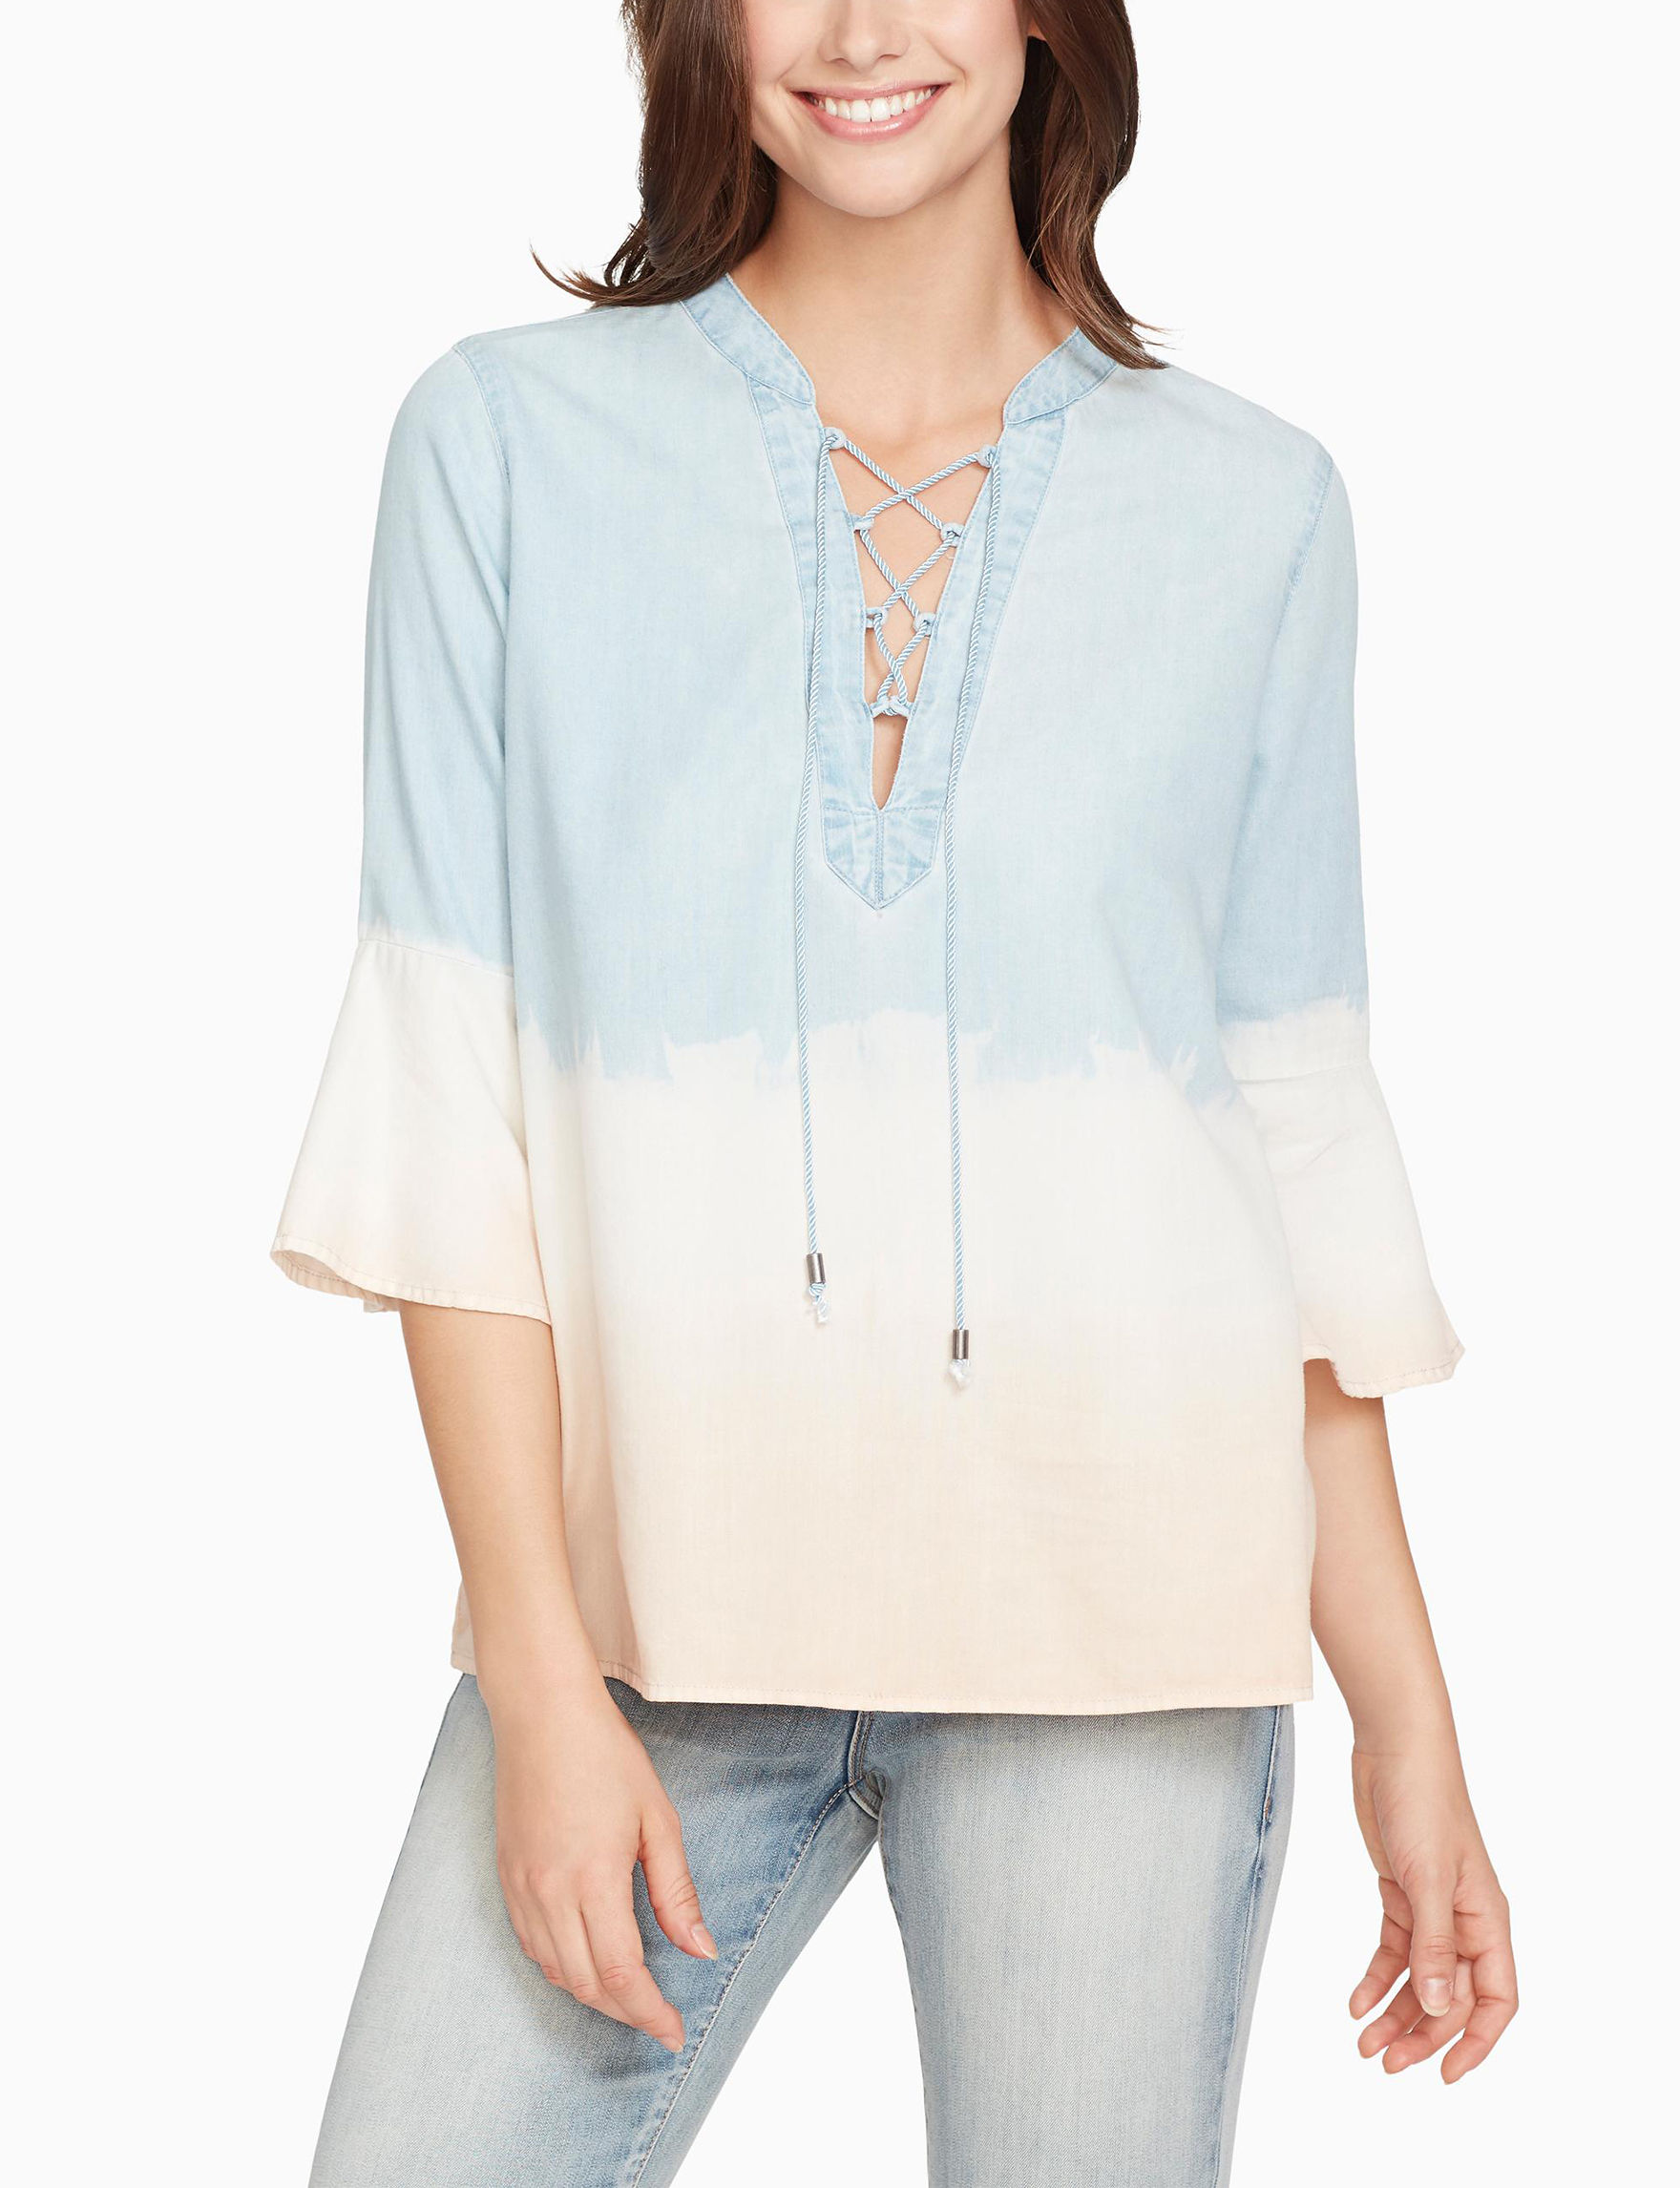 Nine West Blue/White/Pink Shirts & Blouses